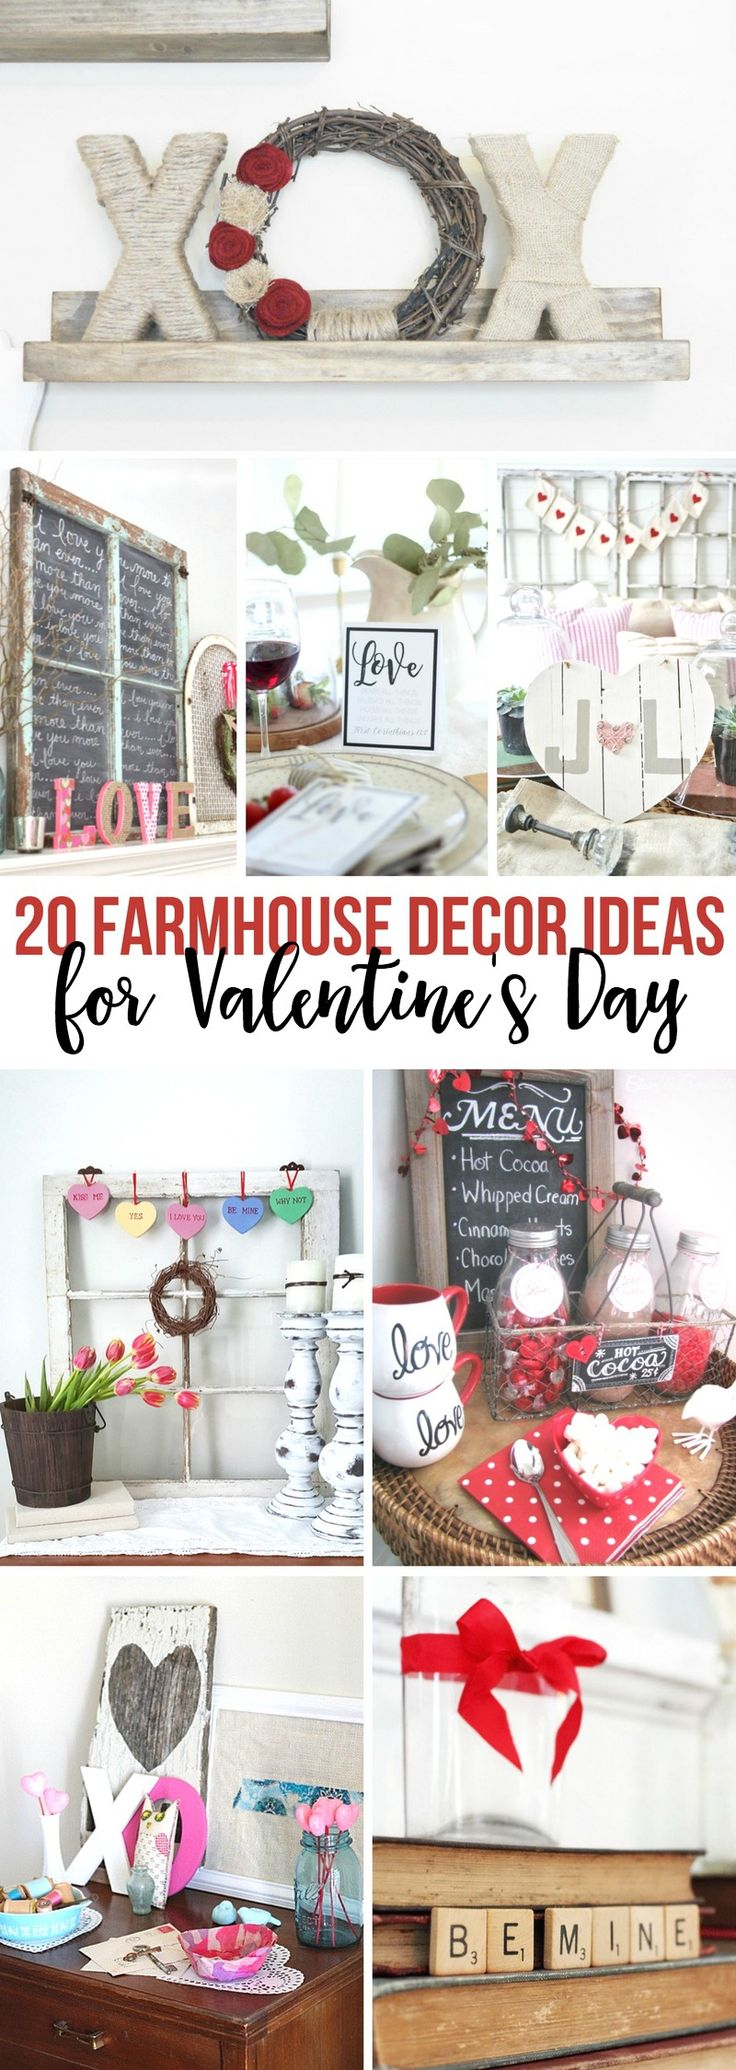 463 best Valentine\'s Day Crafts and Decorating images on Pinterest ...